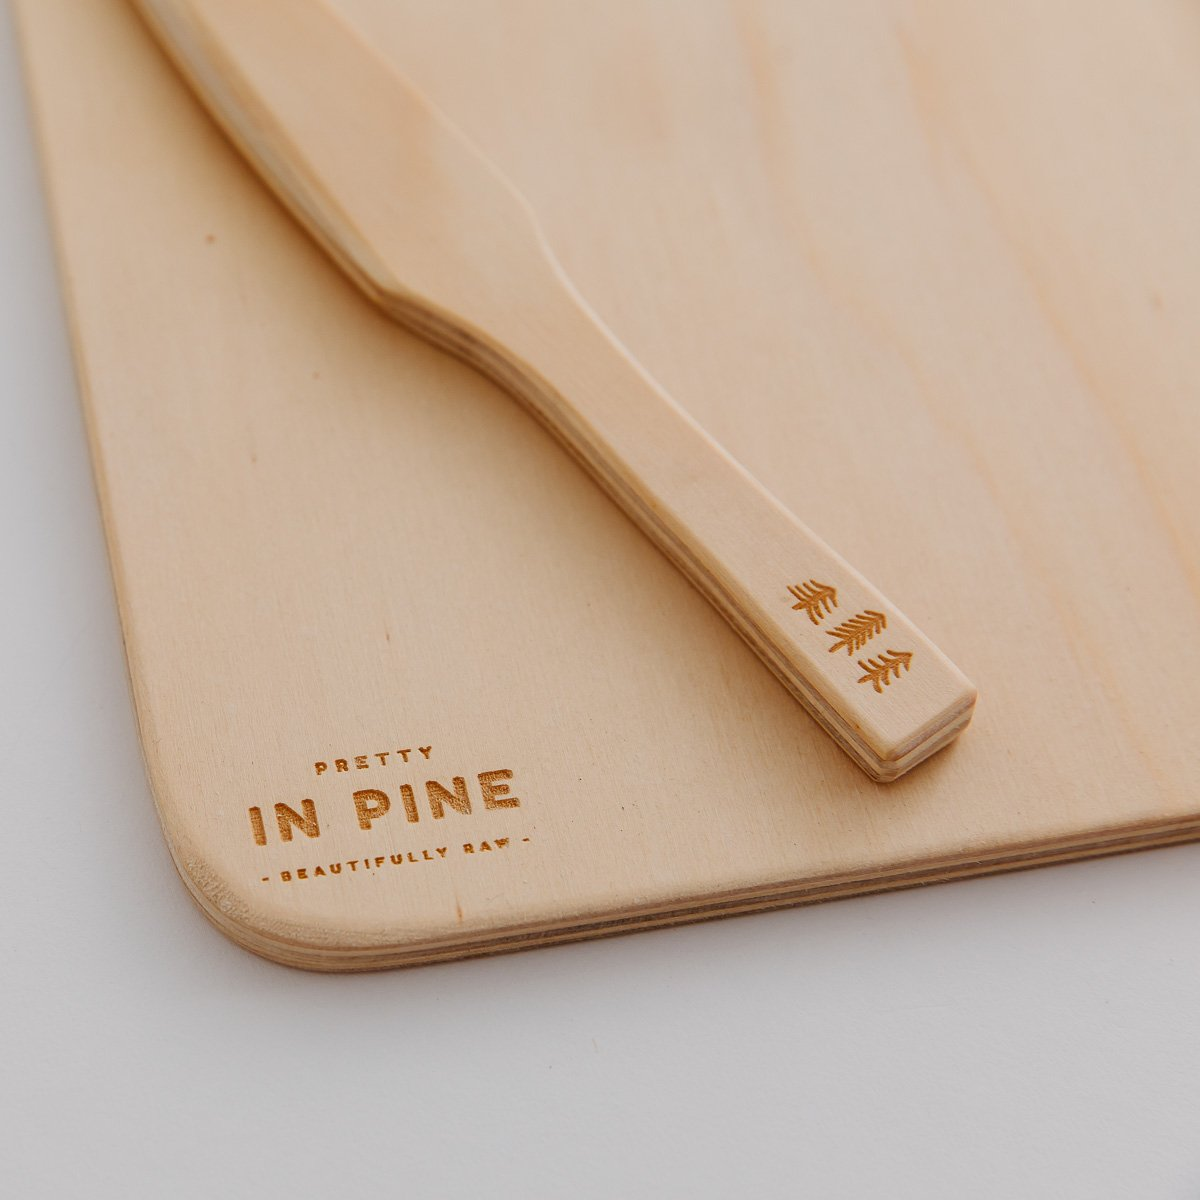 Playdough Board & Knife by Pretty In Pine